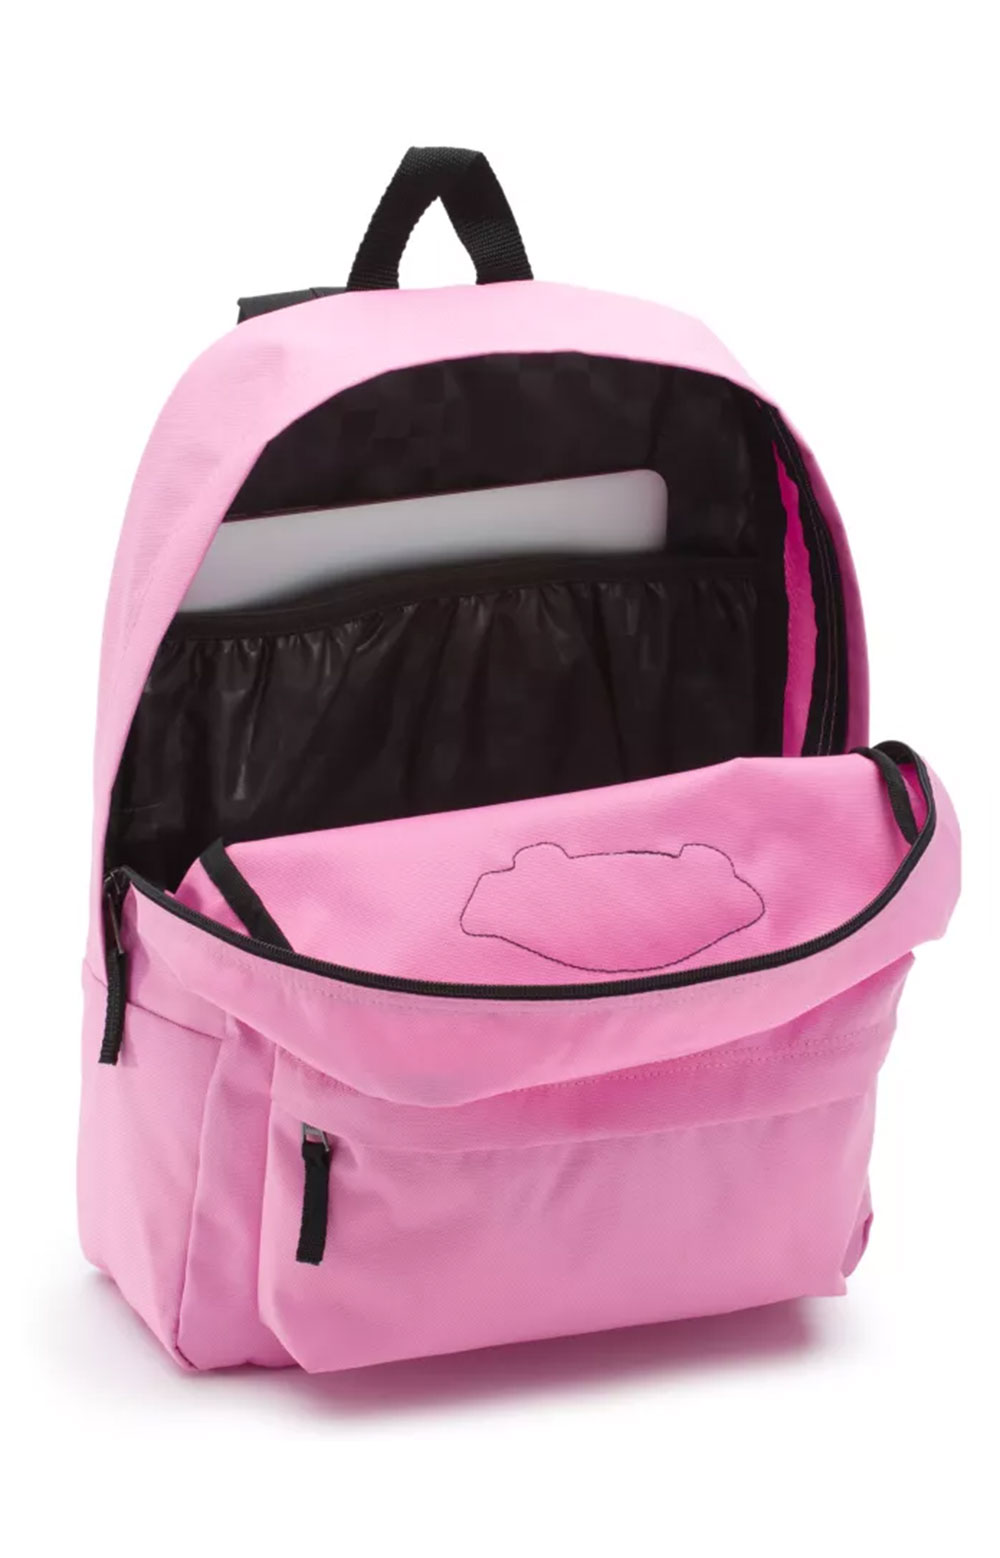 Realm Solid Backpack - Fuchsia Pink 2